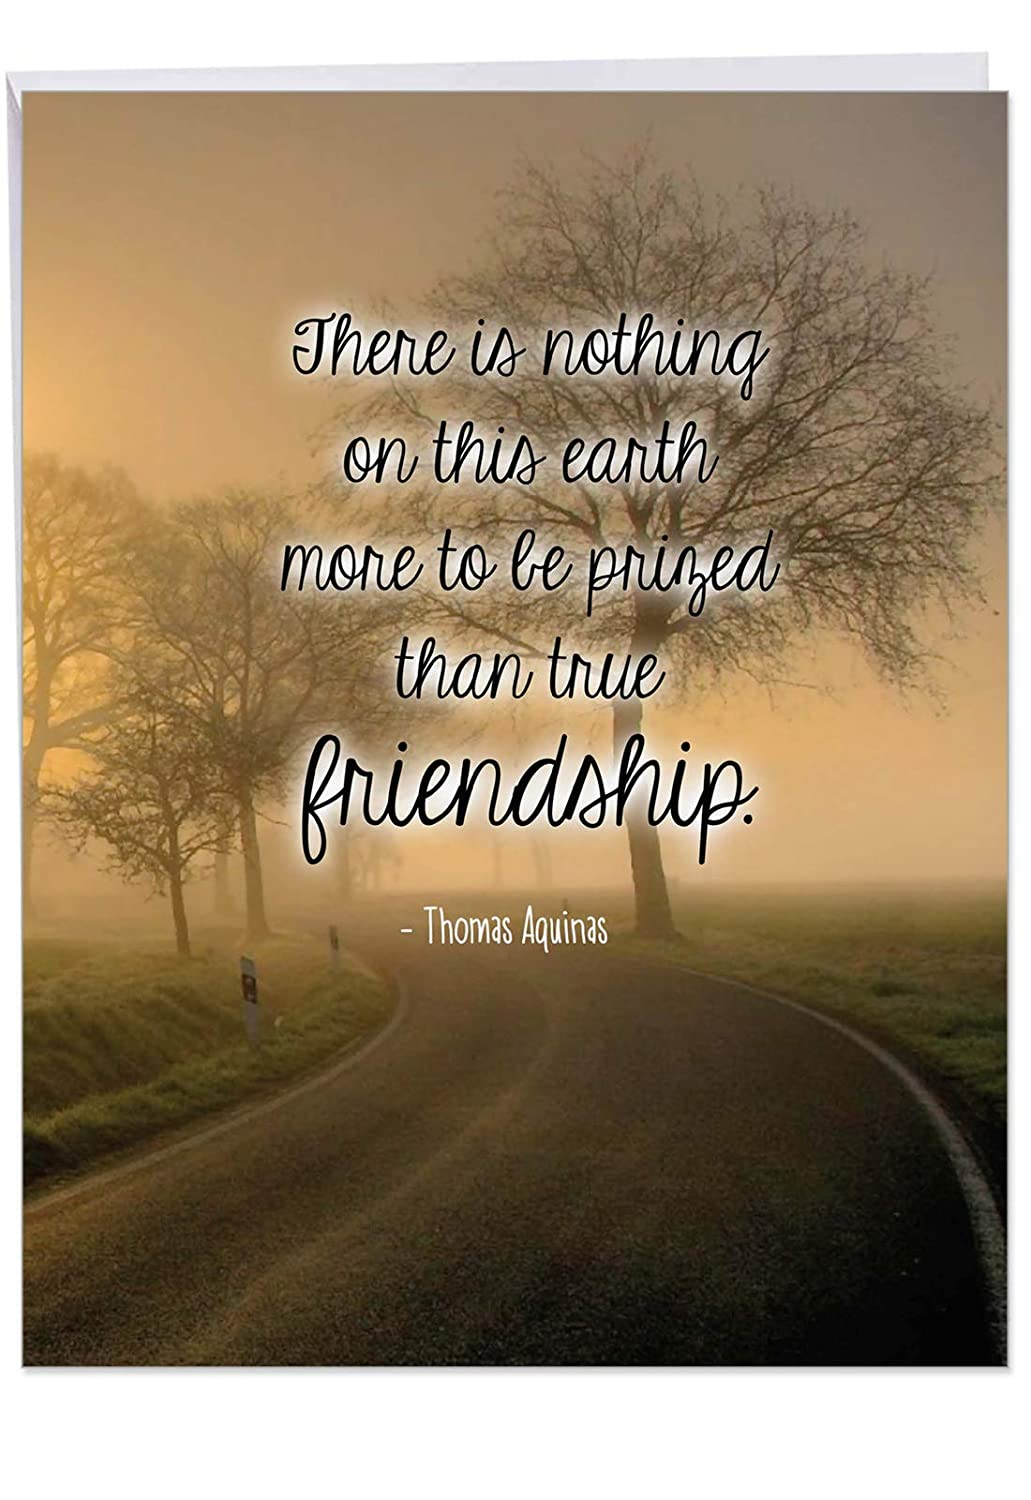 Friendly Words Friendship Birthday\' Greeting Card with Envelope 8.5 x 11  Inch - True Friends Quote by Saint Thomas Aquinas - Nature Design  Stationery ...